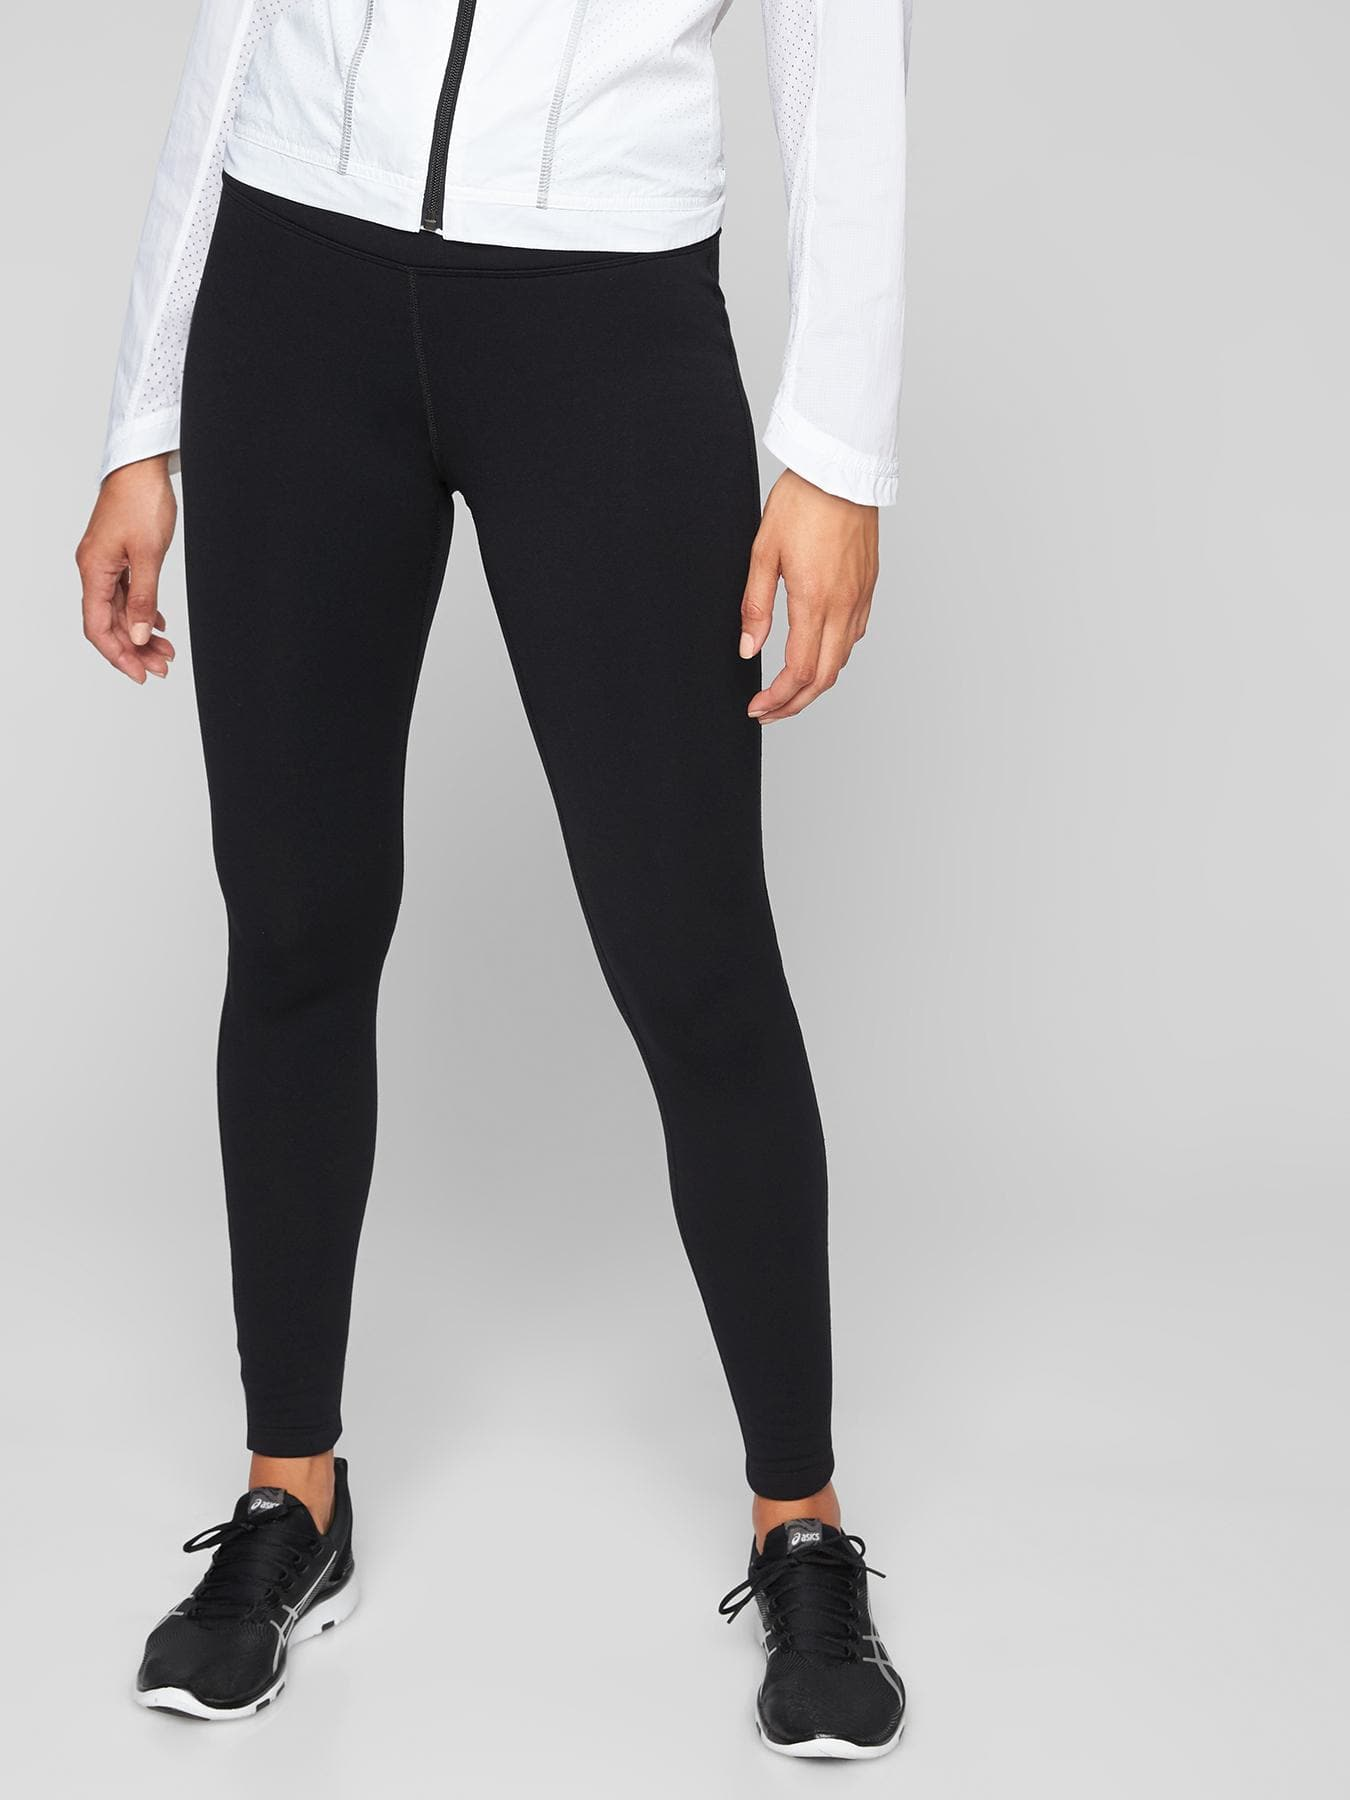 Athleta Polartec Power Stretch Tight